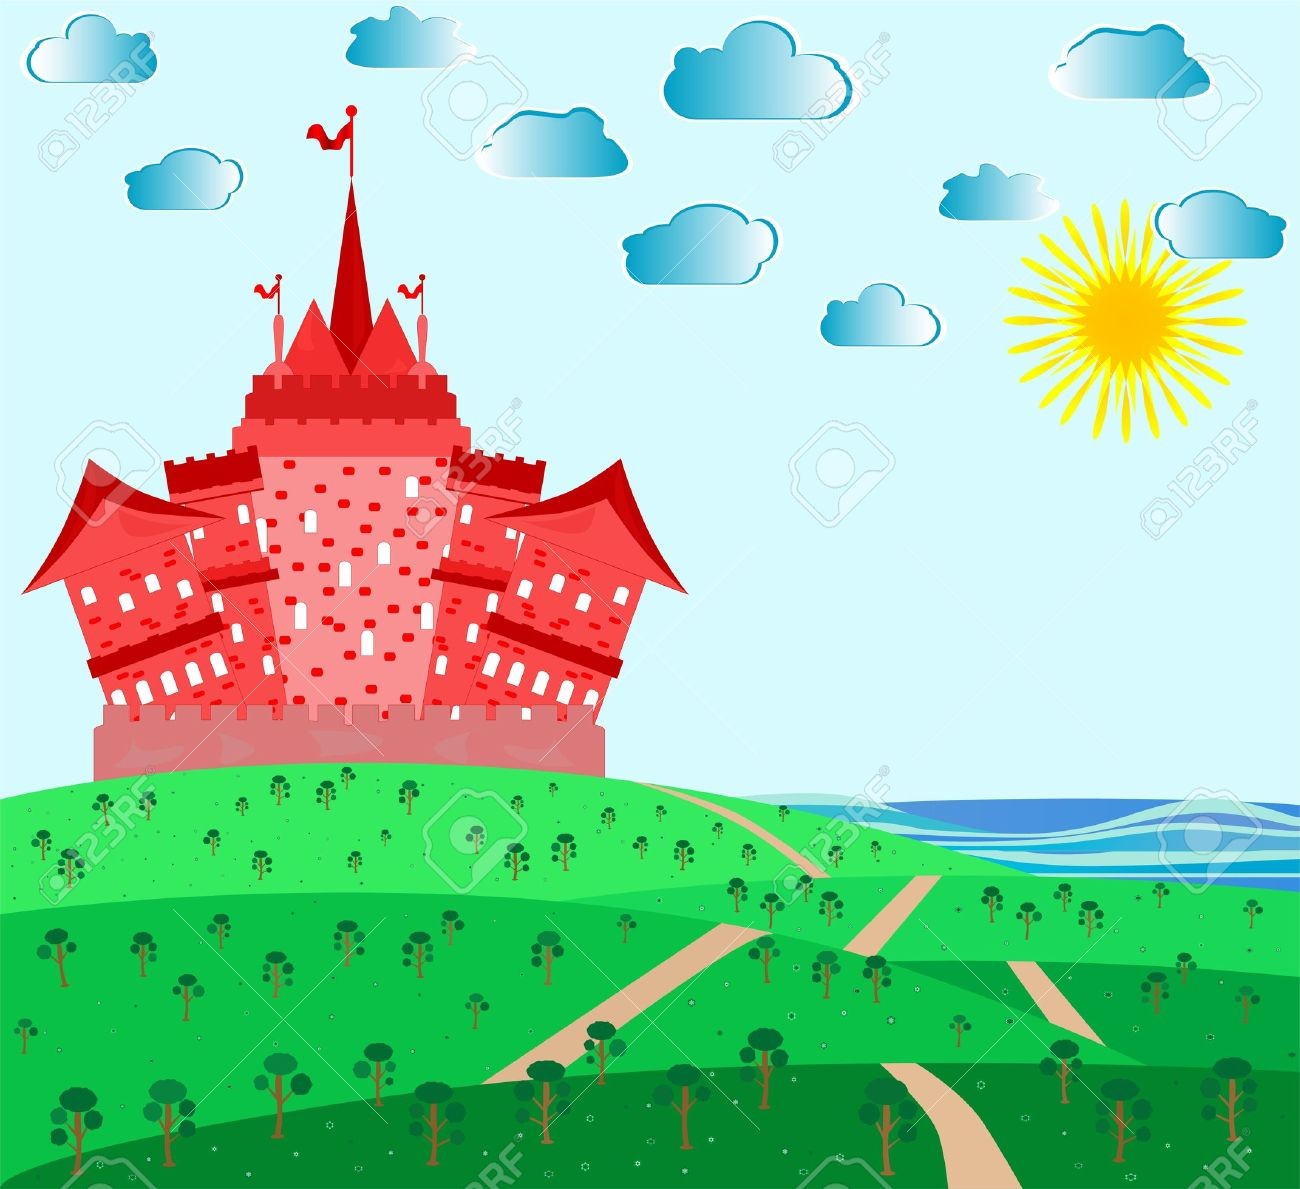 Fairytale Landscape With Red Magic Castle Royalty Free Cliparts.